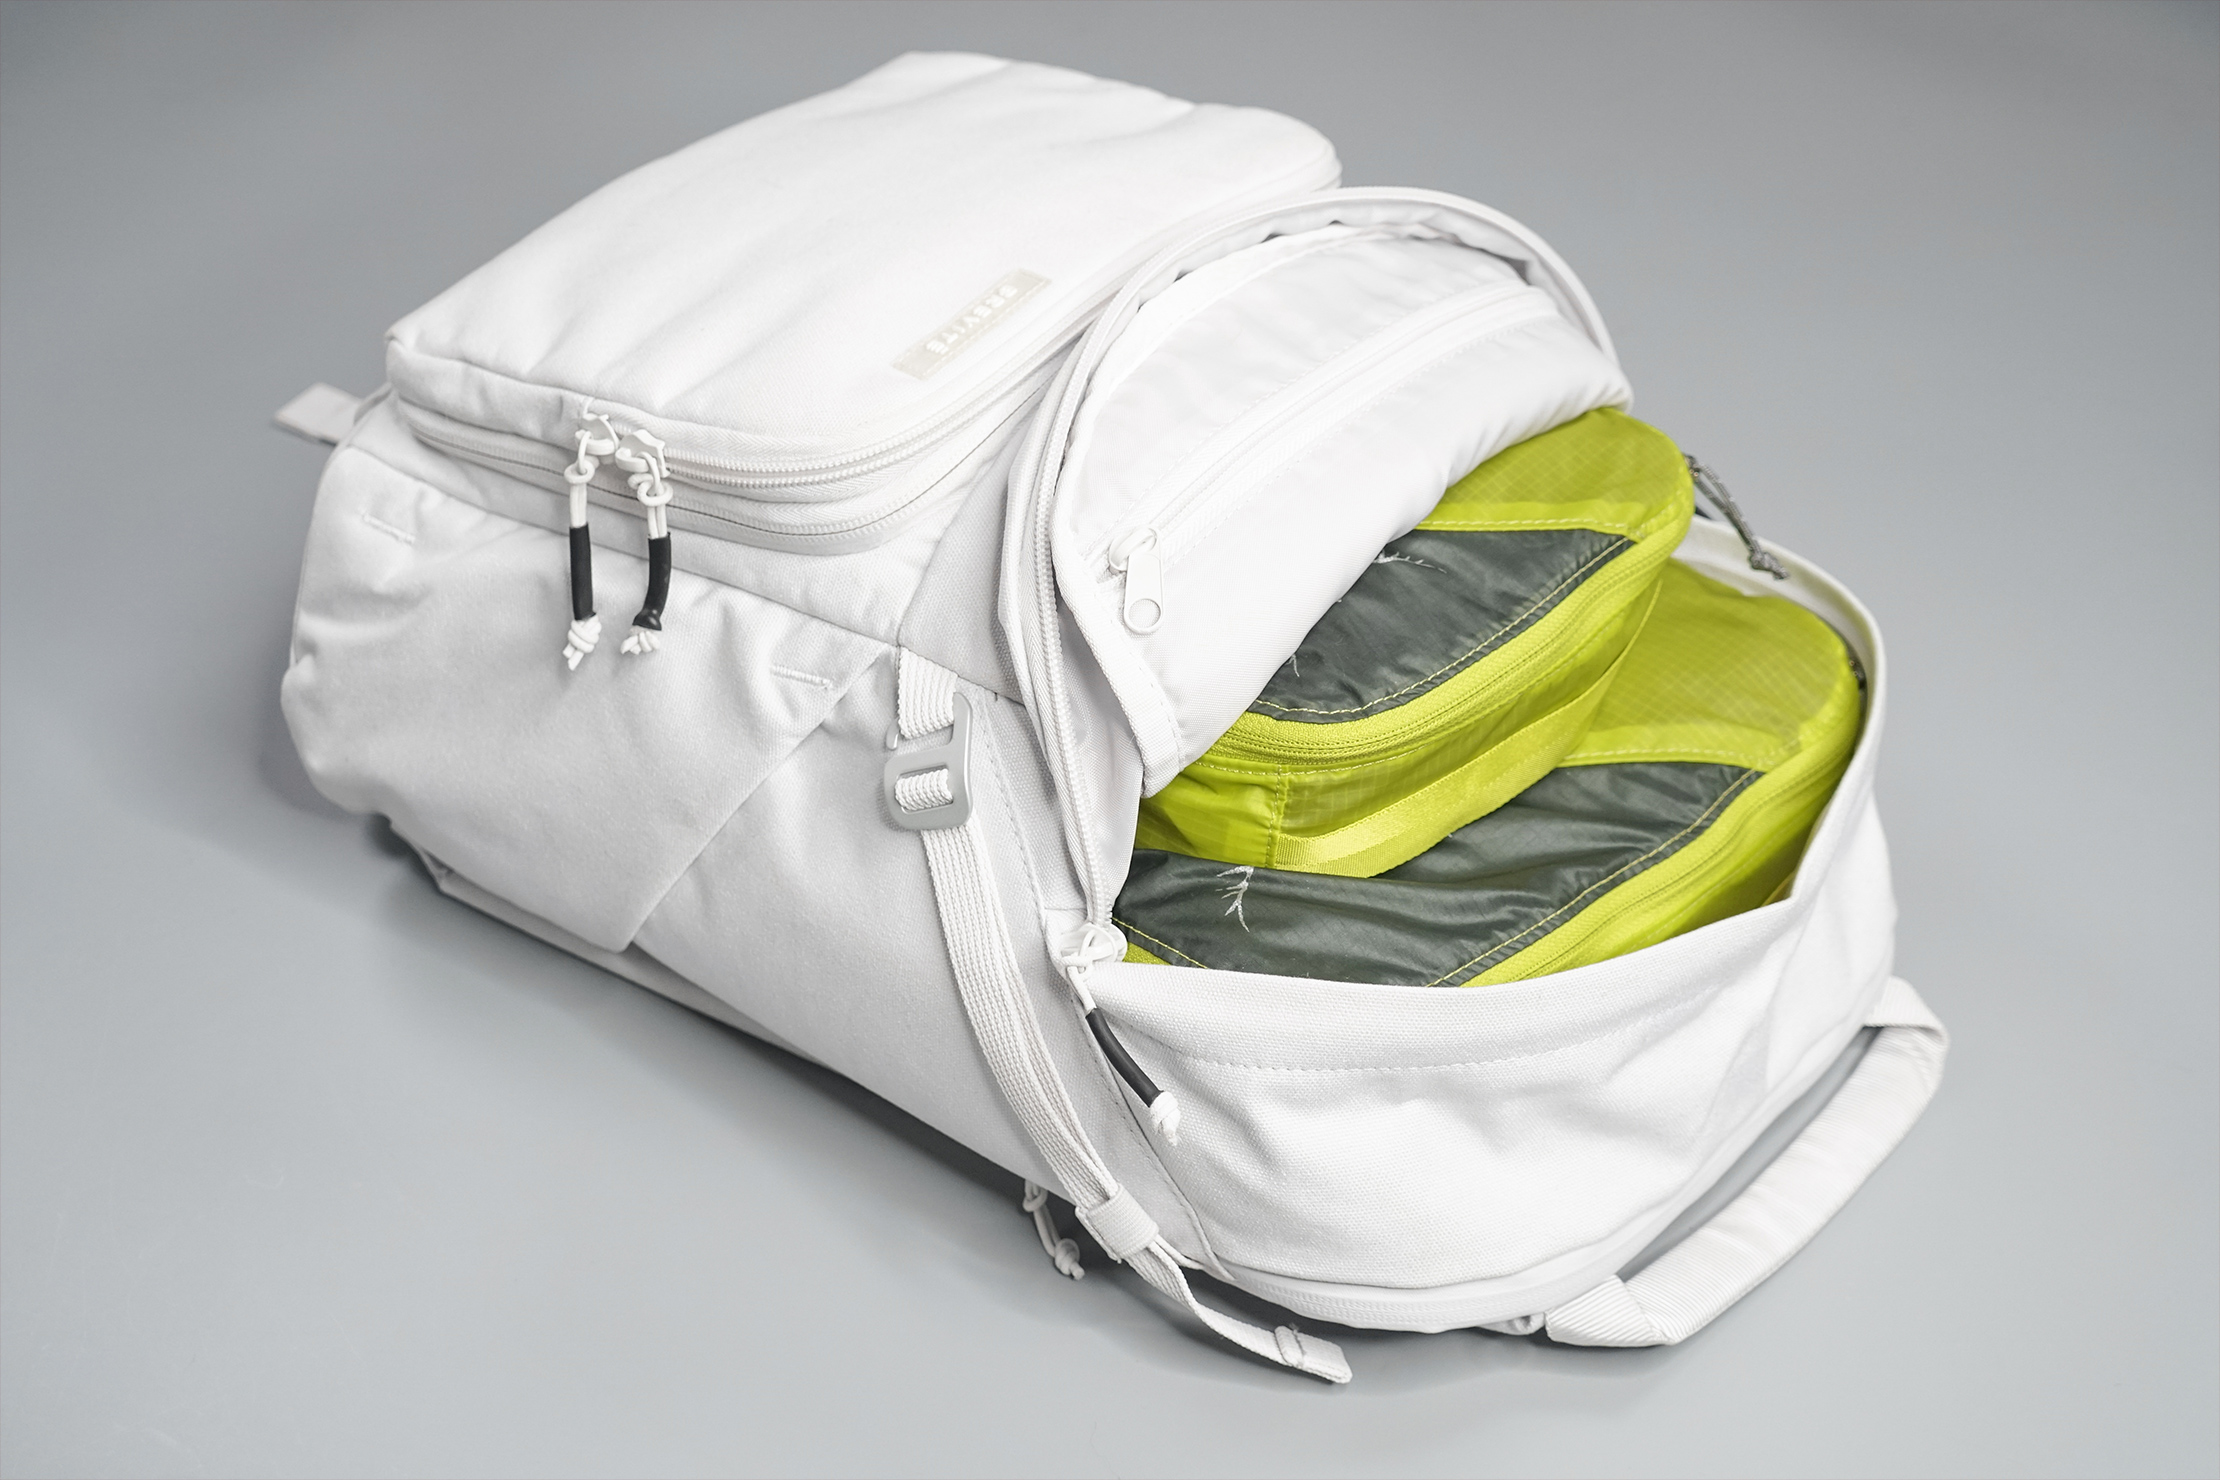 Brevitē Jumper Photo Backpack Main Compartment Fully Packed